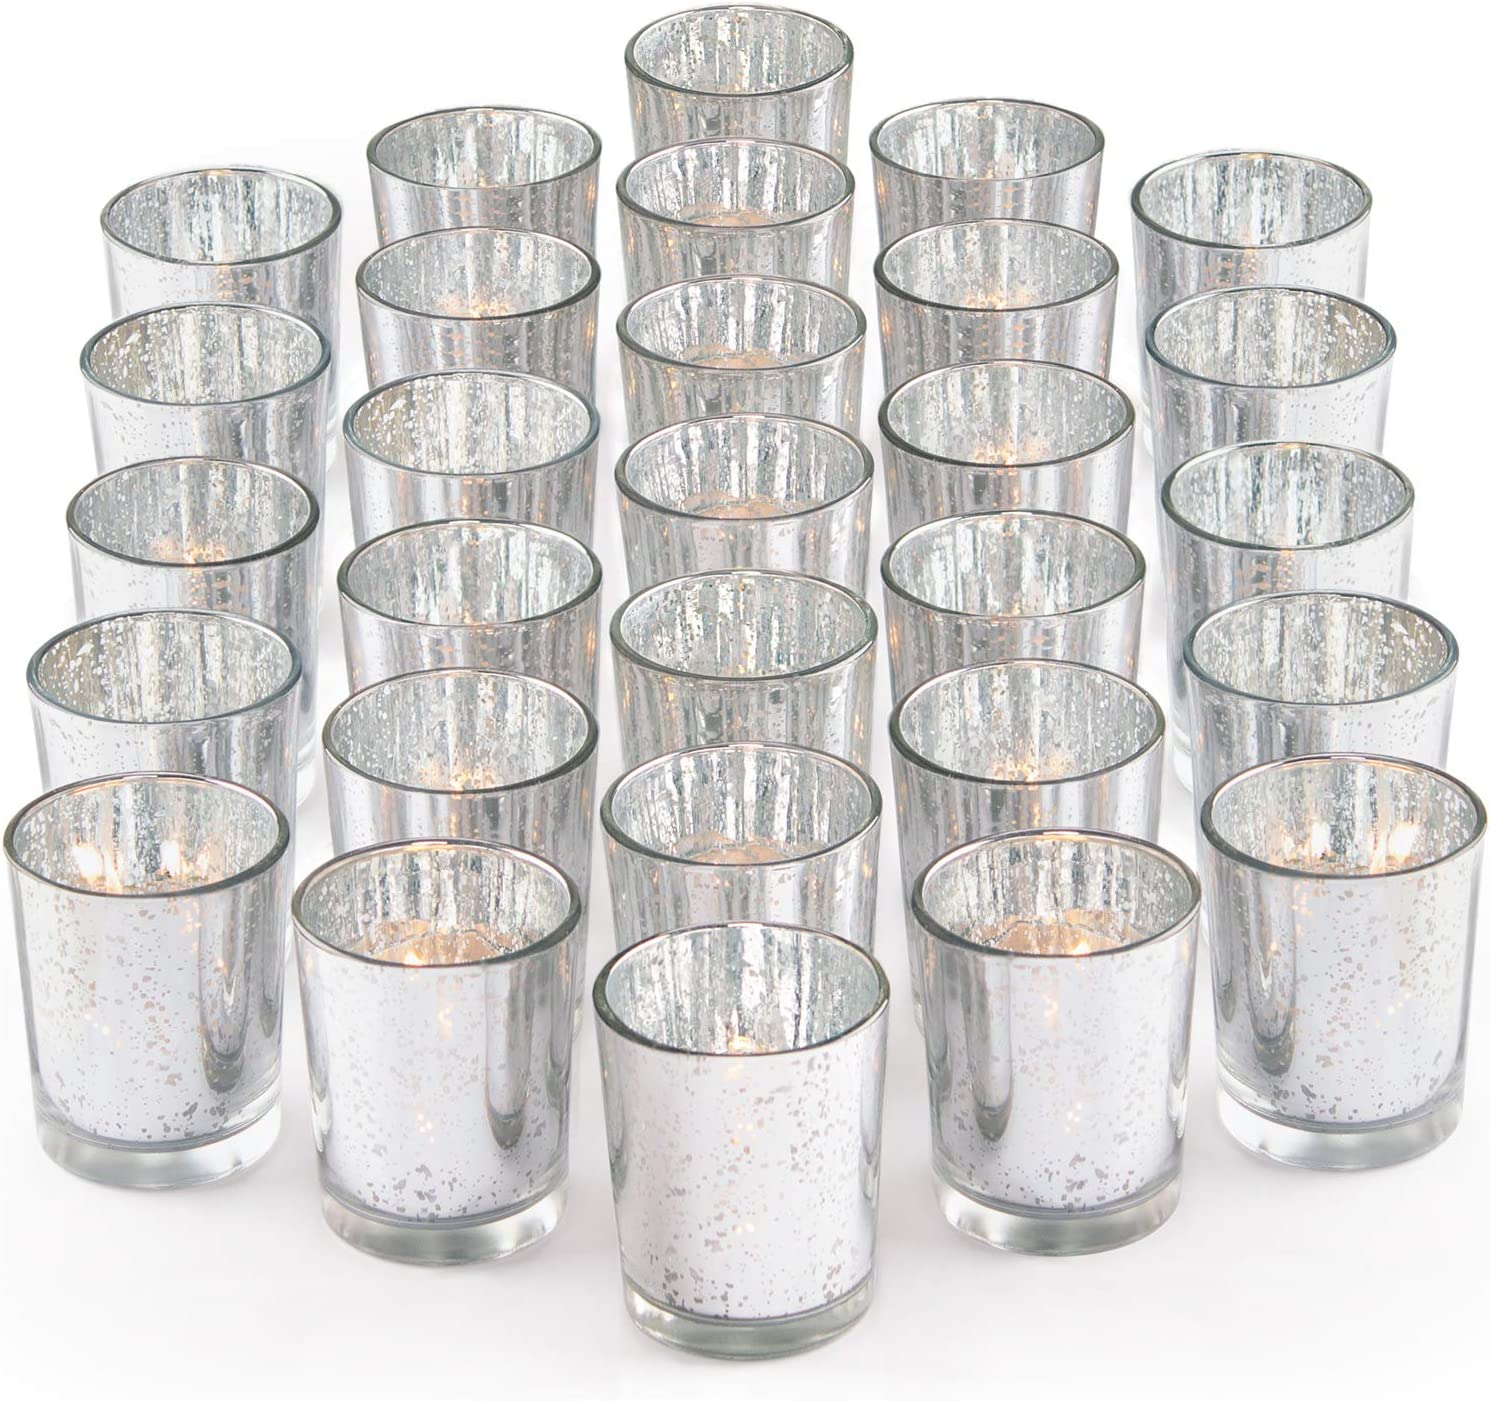 Amazon Com Letine Silver Votive Candle Holders Set Of 36 Speckled Mercury Silver Glass Candle Holder Bulk Ideal For Wedding Centerpieces Home Decor Kitchen Dining